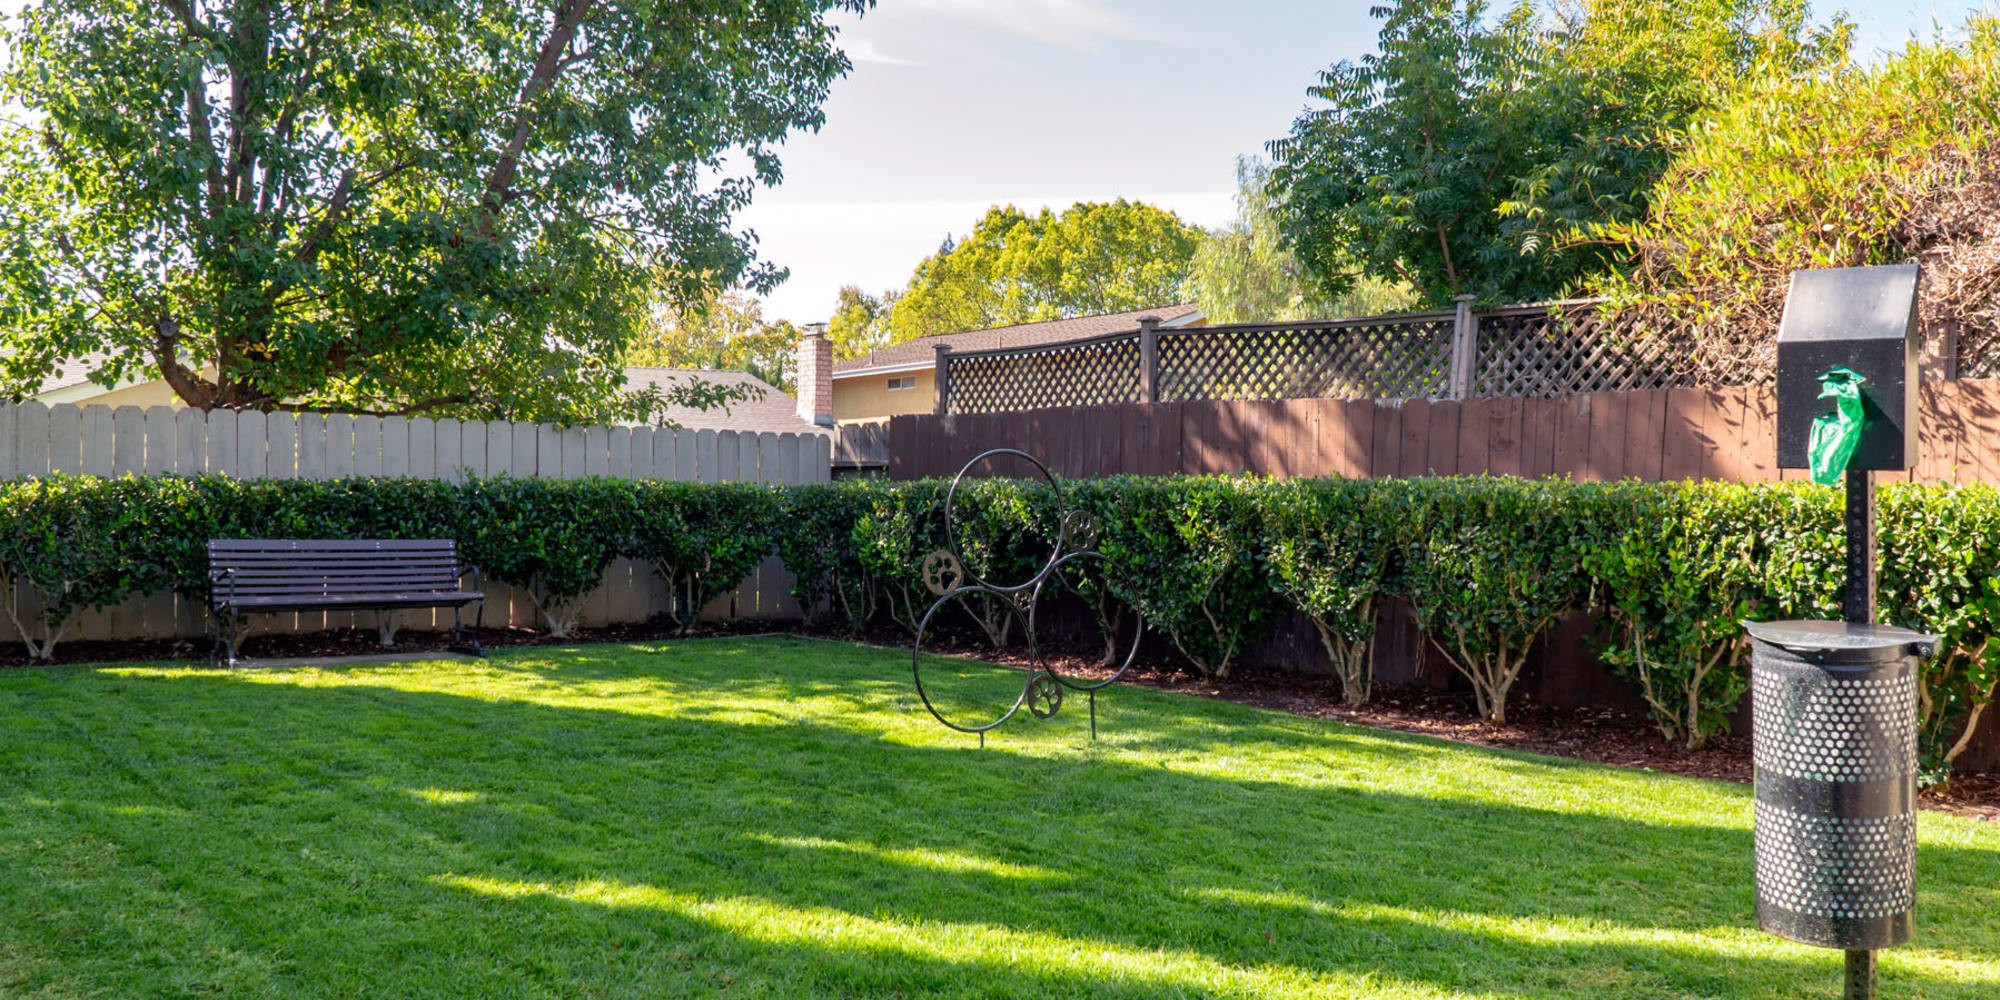 Onsite dog park with agility training equipment at Pleasanton Place Apartment Homes in Pleasanton, California